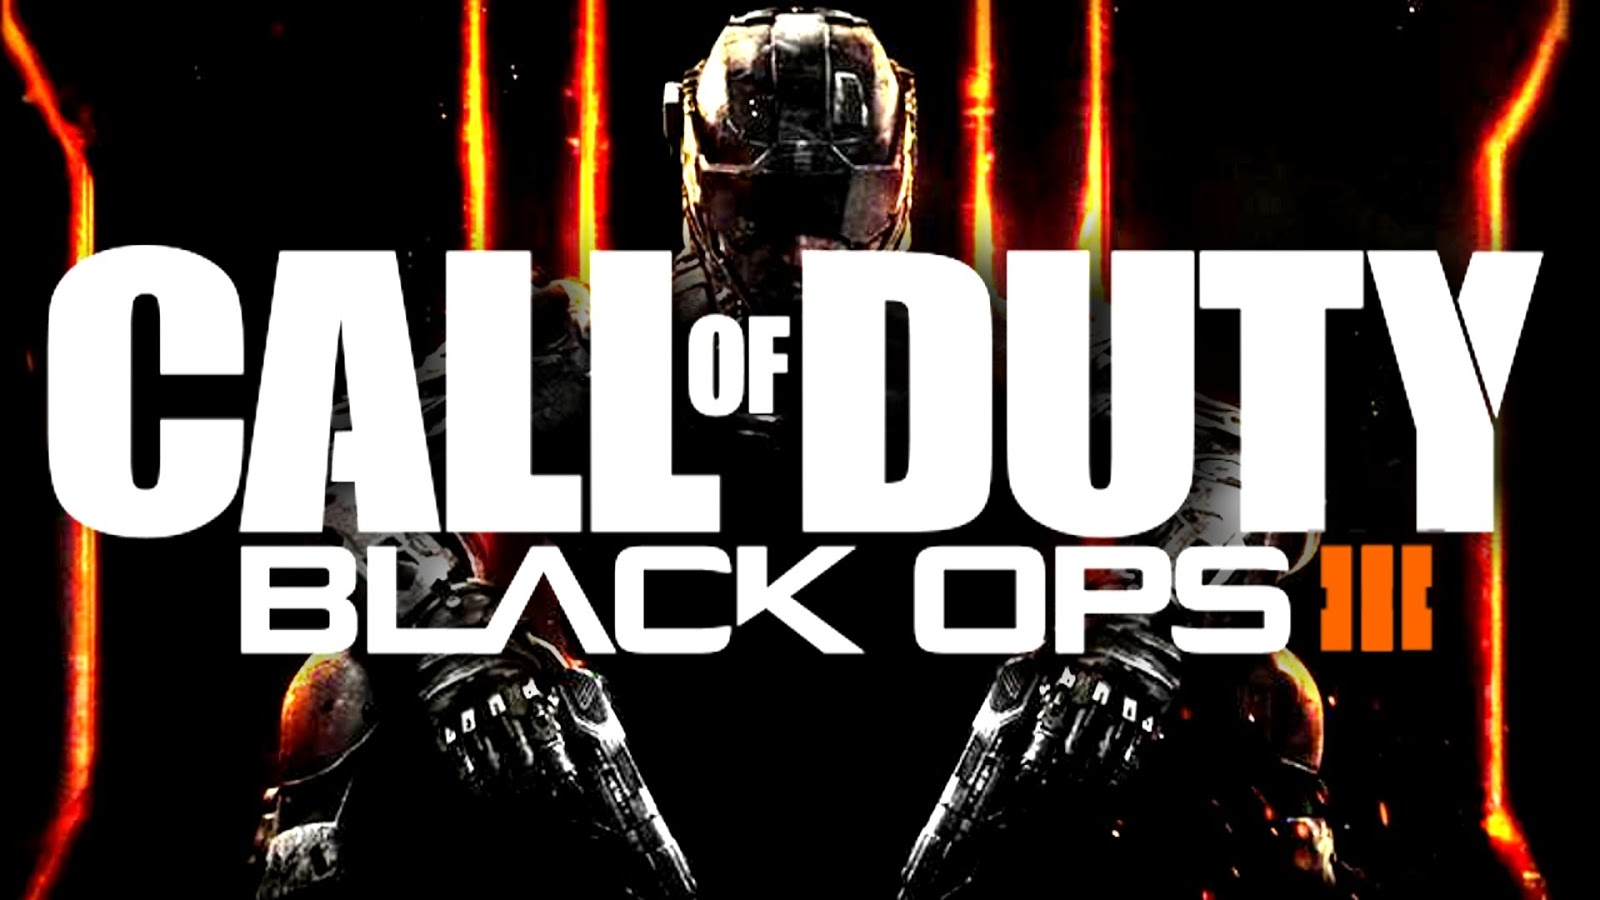 black ops 2 map packs with Black Ops 3 Wallpaper Background on B005K8LOA2 likewise 4 New Official Call Of Duty Black Ops 3 Zombies Screenshots in addition  furthermore Black Ops 3 Zombies Chronicles Costs 29 99 Bonus Content Included moreover Black Ops 3 Wallpaper Background.